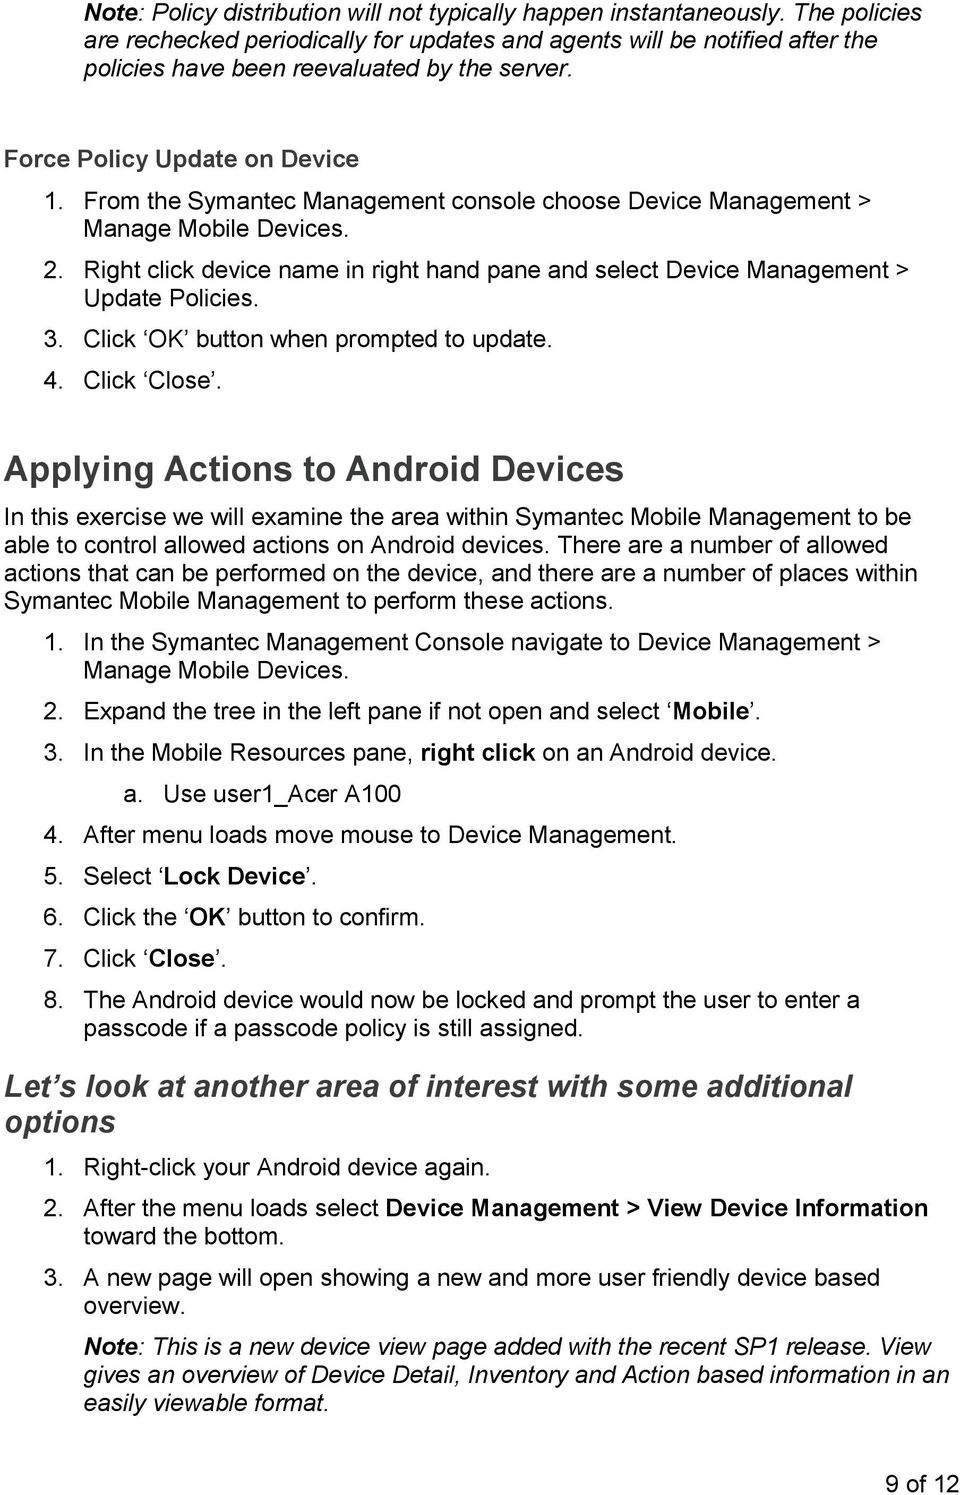 From the Symantec Management console choose Device Management > Manage Mobile Devices. 2. Right click device name in right hand pane and select Device Management > Update Policies. 3.